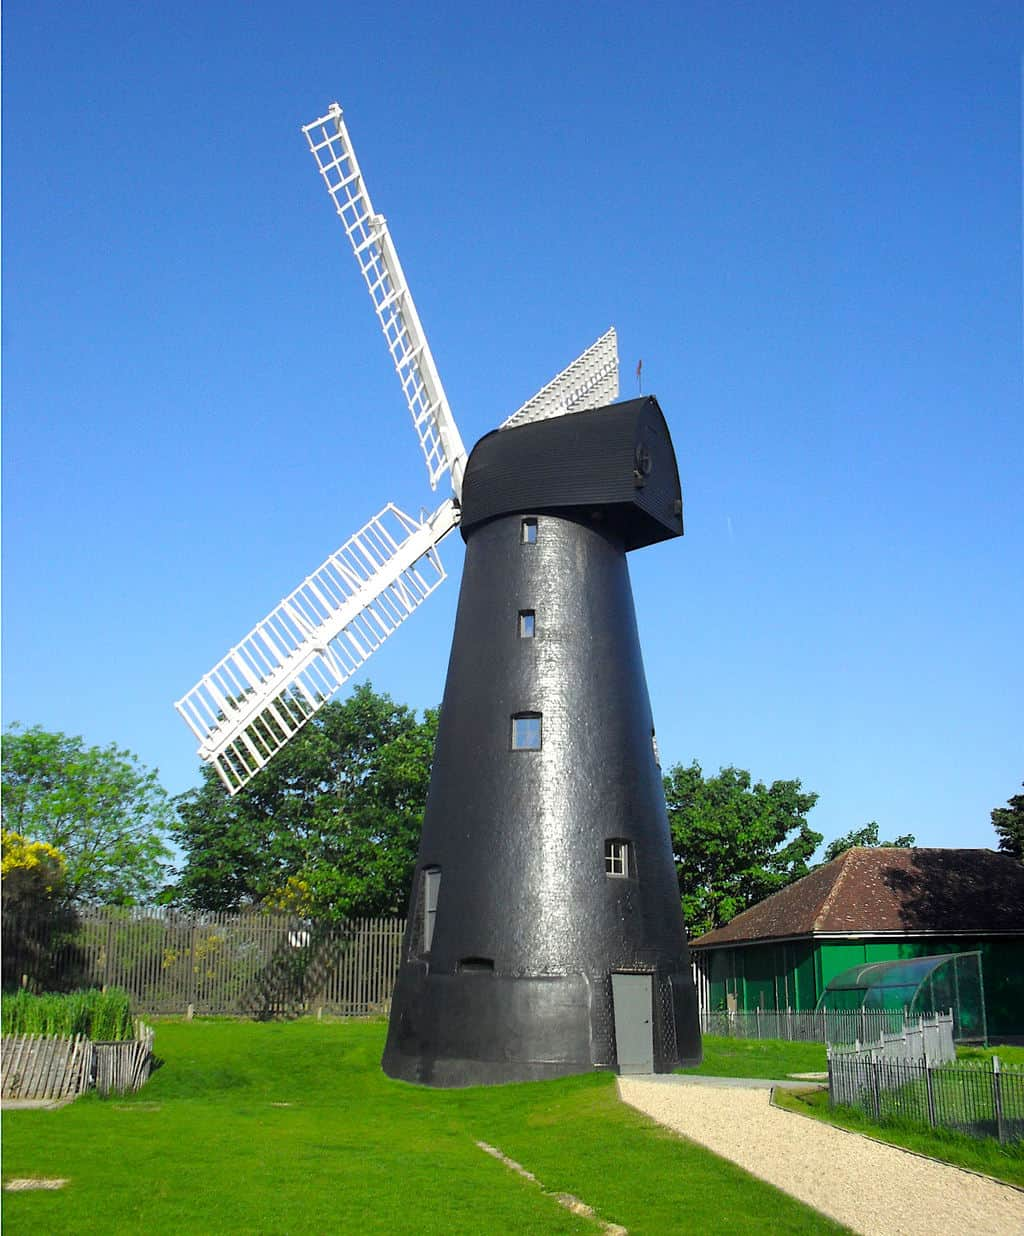 The Brixton Windmill is the oldest and last, fully functioning windmill in London.